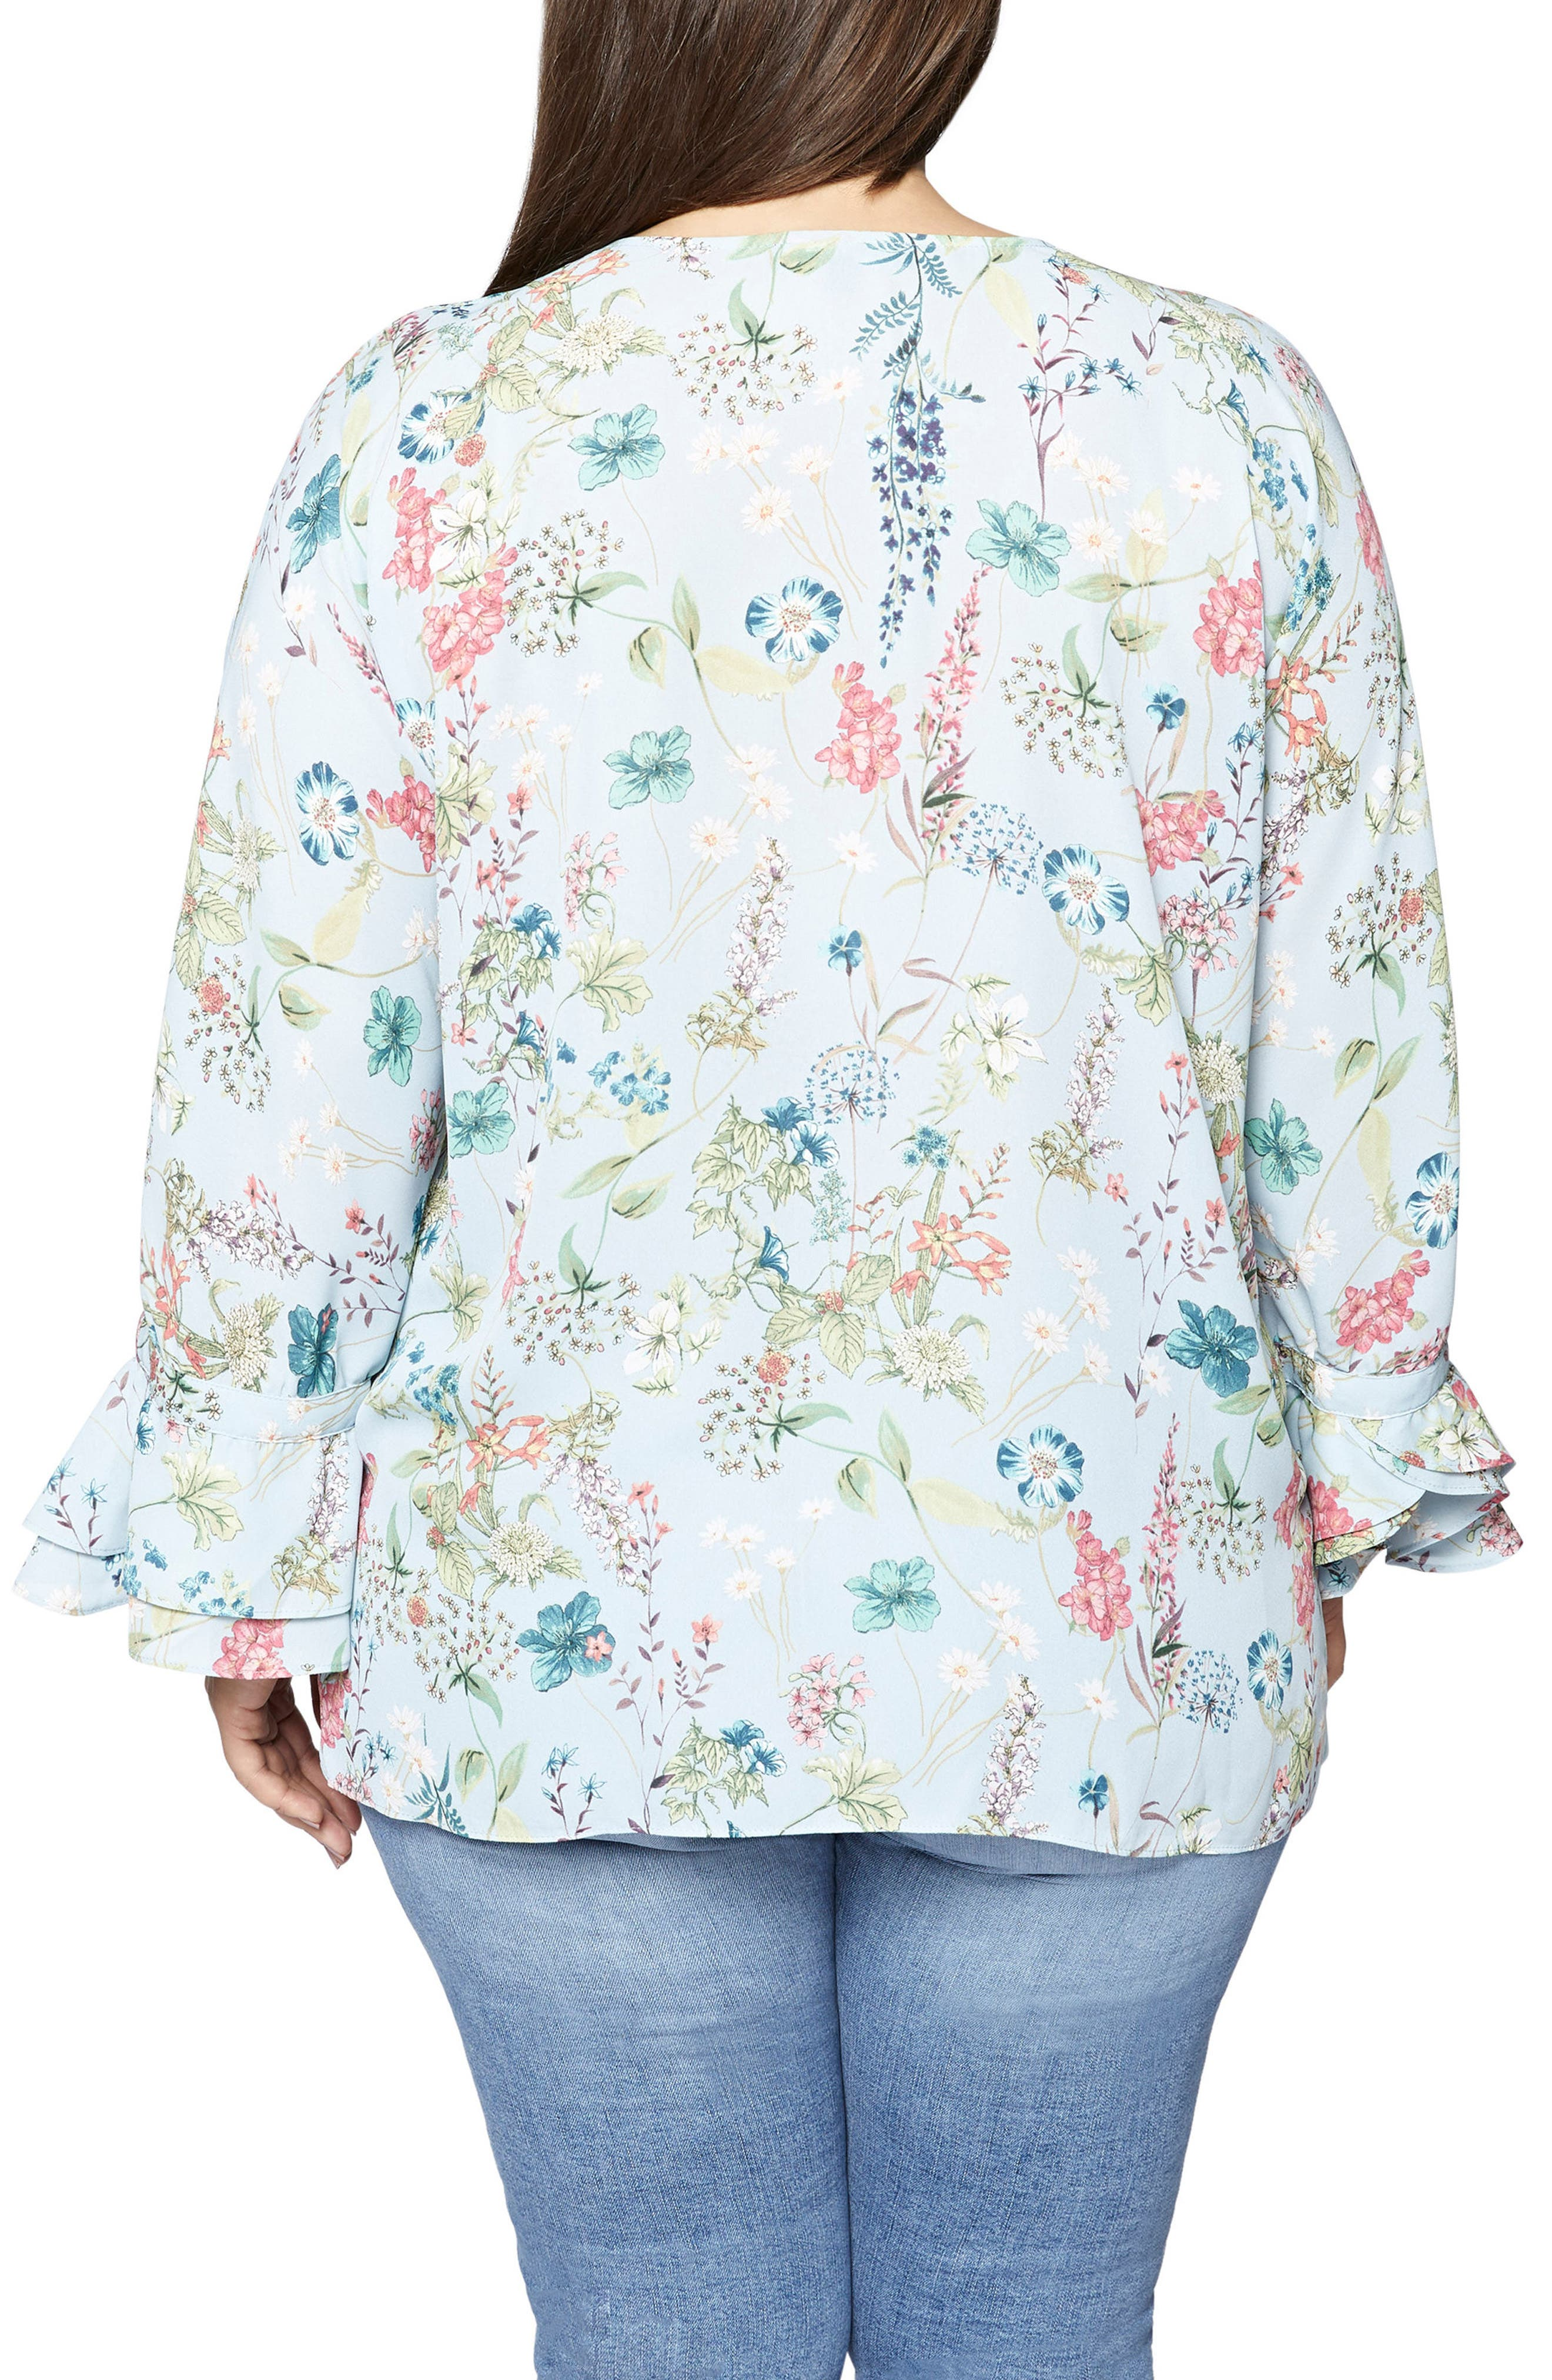 Posey Floral Blouse,                             Alternate thumbnail 2, color,                             450